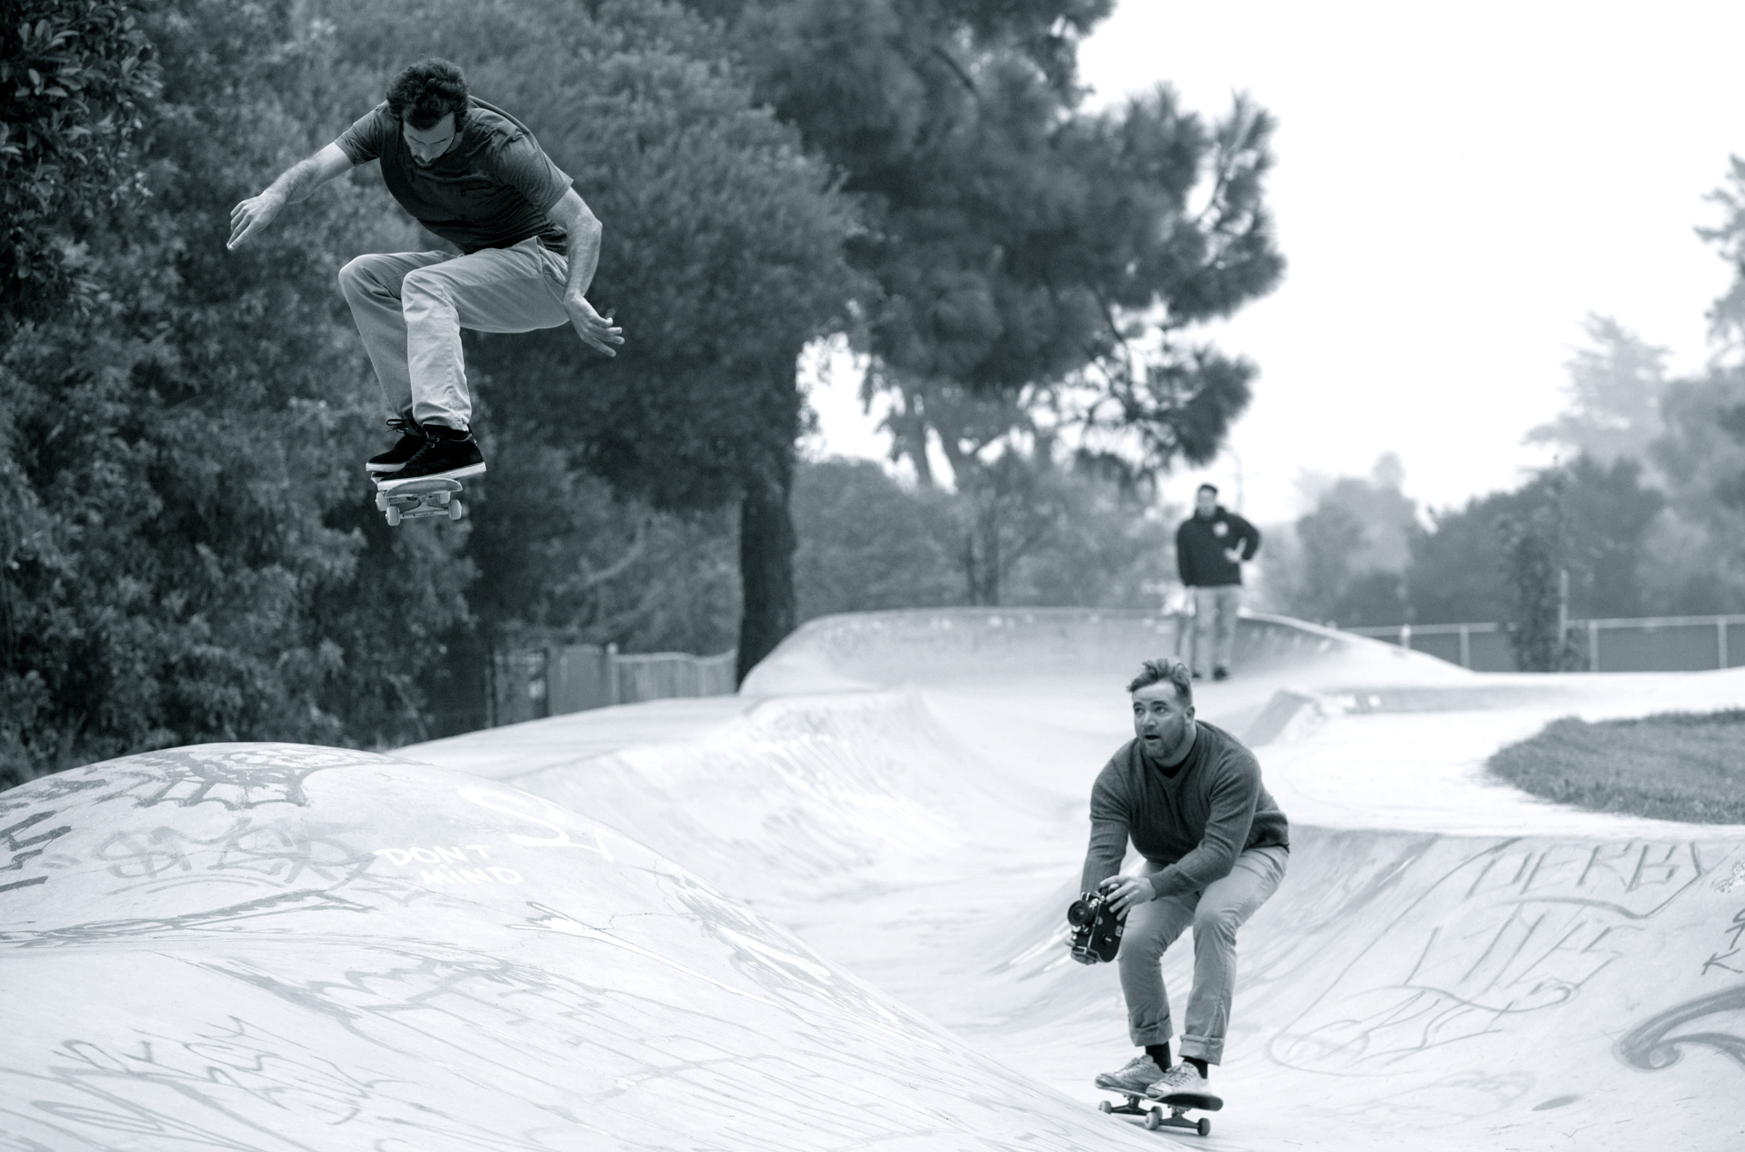 Thomas Campbell is still inspired by the raw power of The Stooges. Here he films skater Javier Mendizaba at the Derby Bowl in Santa Cruz, Calif., for his new film, Cuatro Sueos Pequeos.